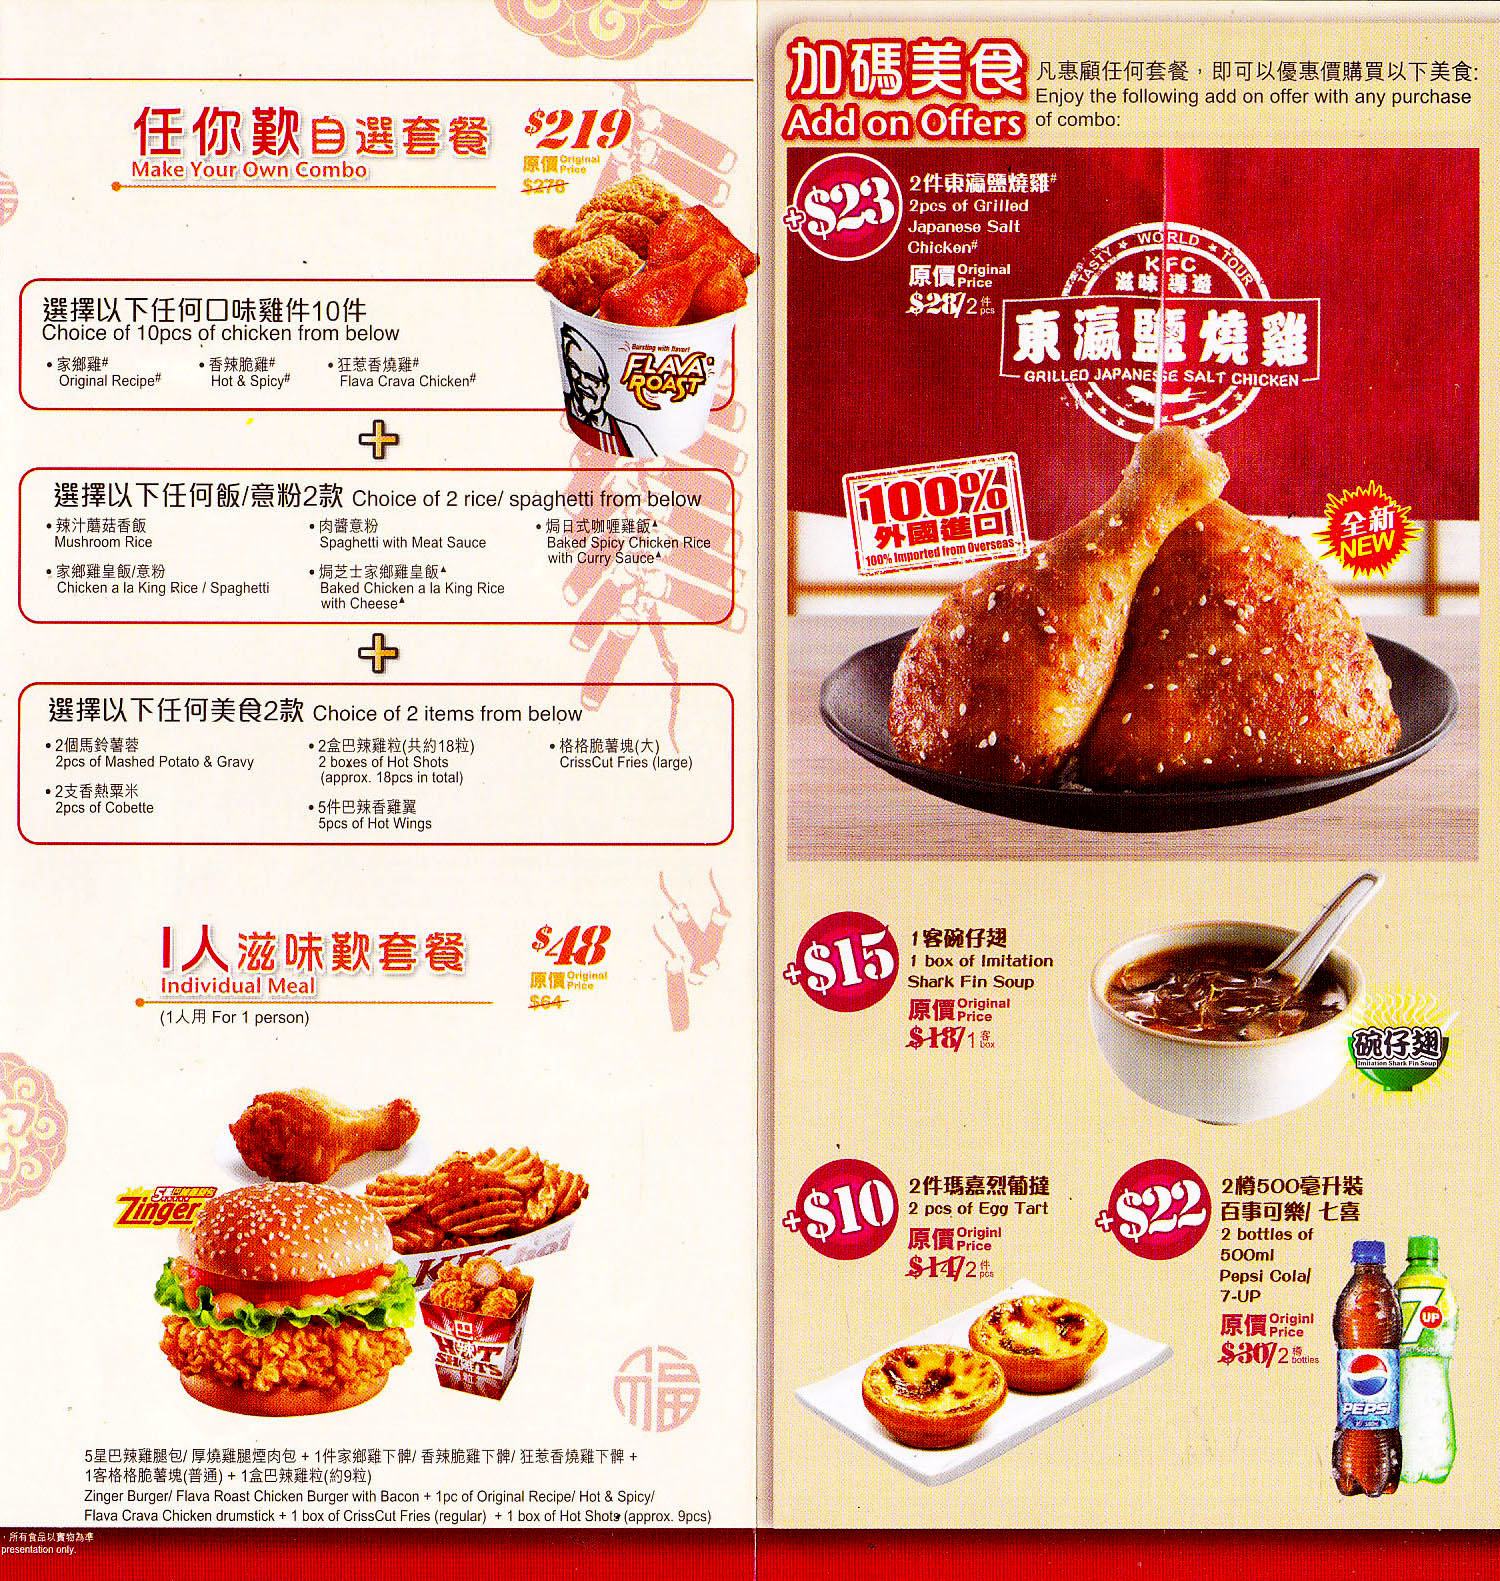 Kfc Fried Chicken Price - photo#30